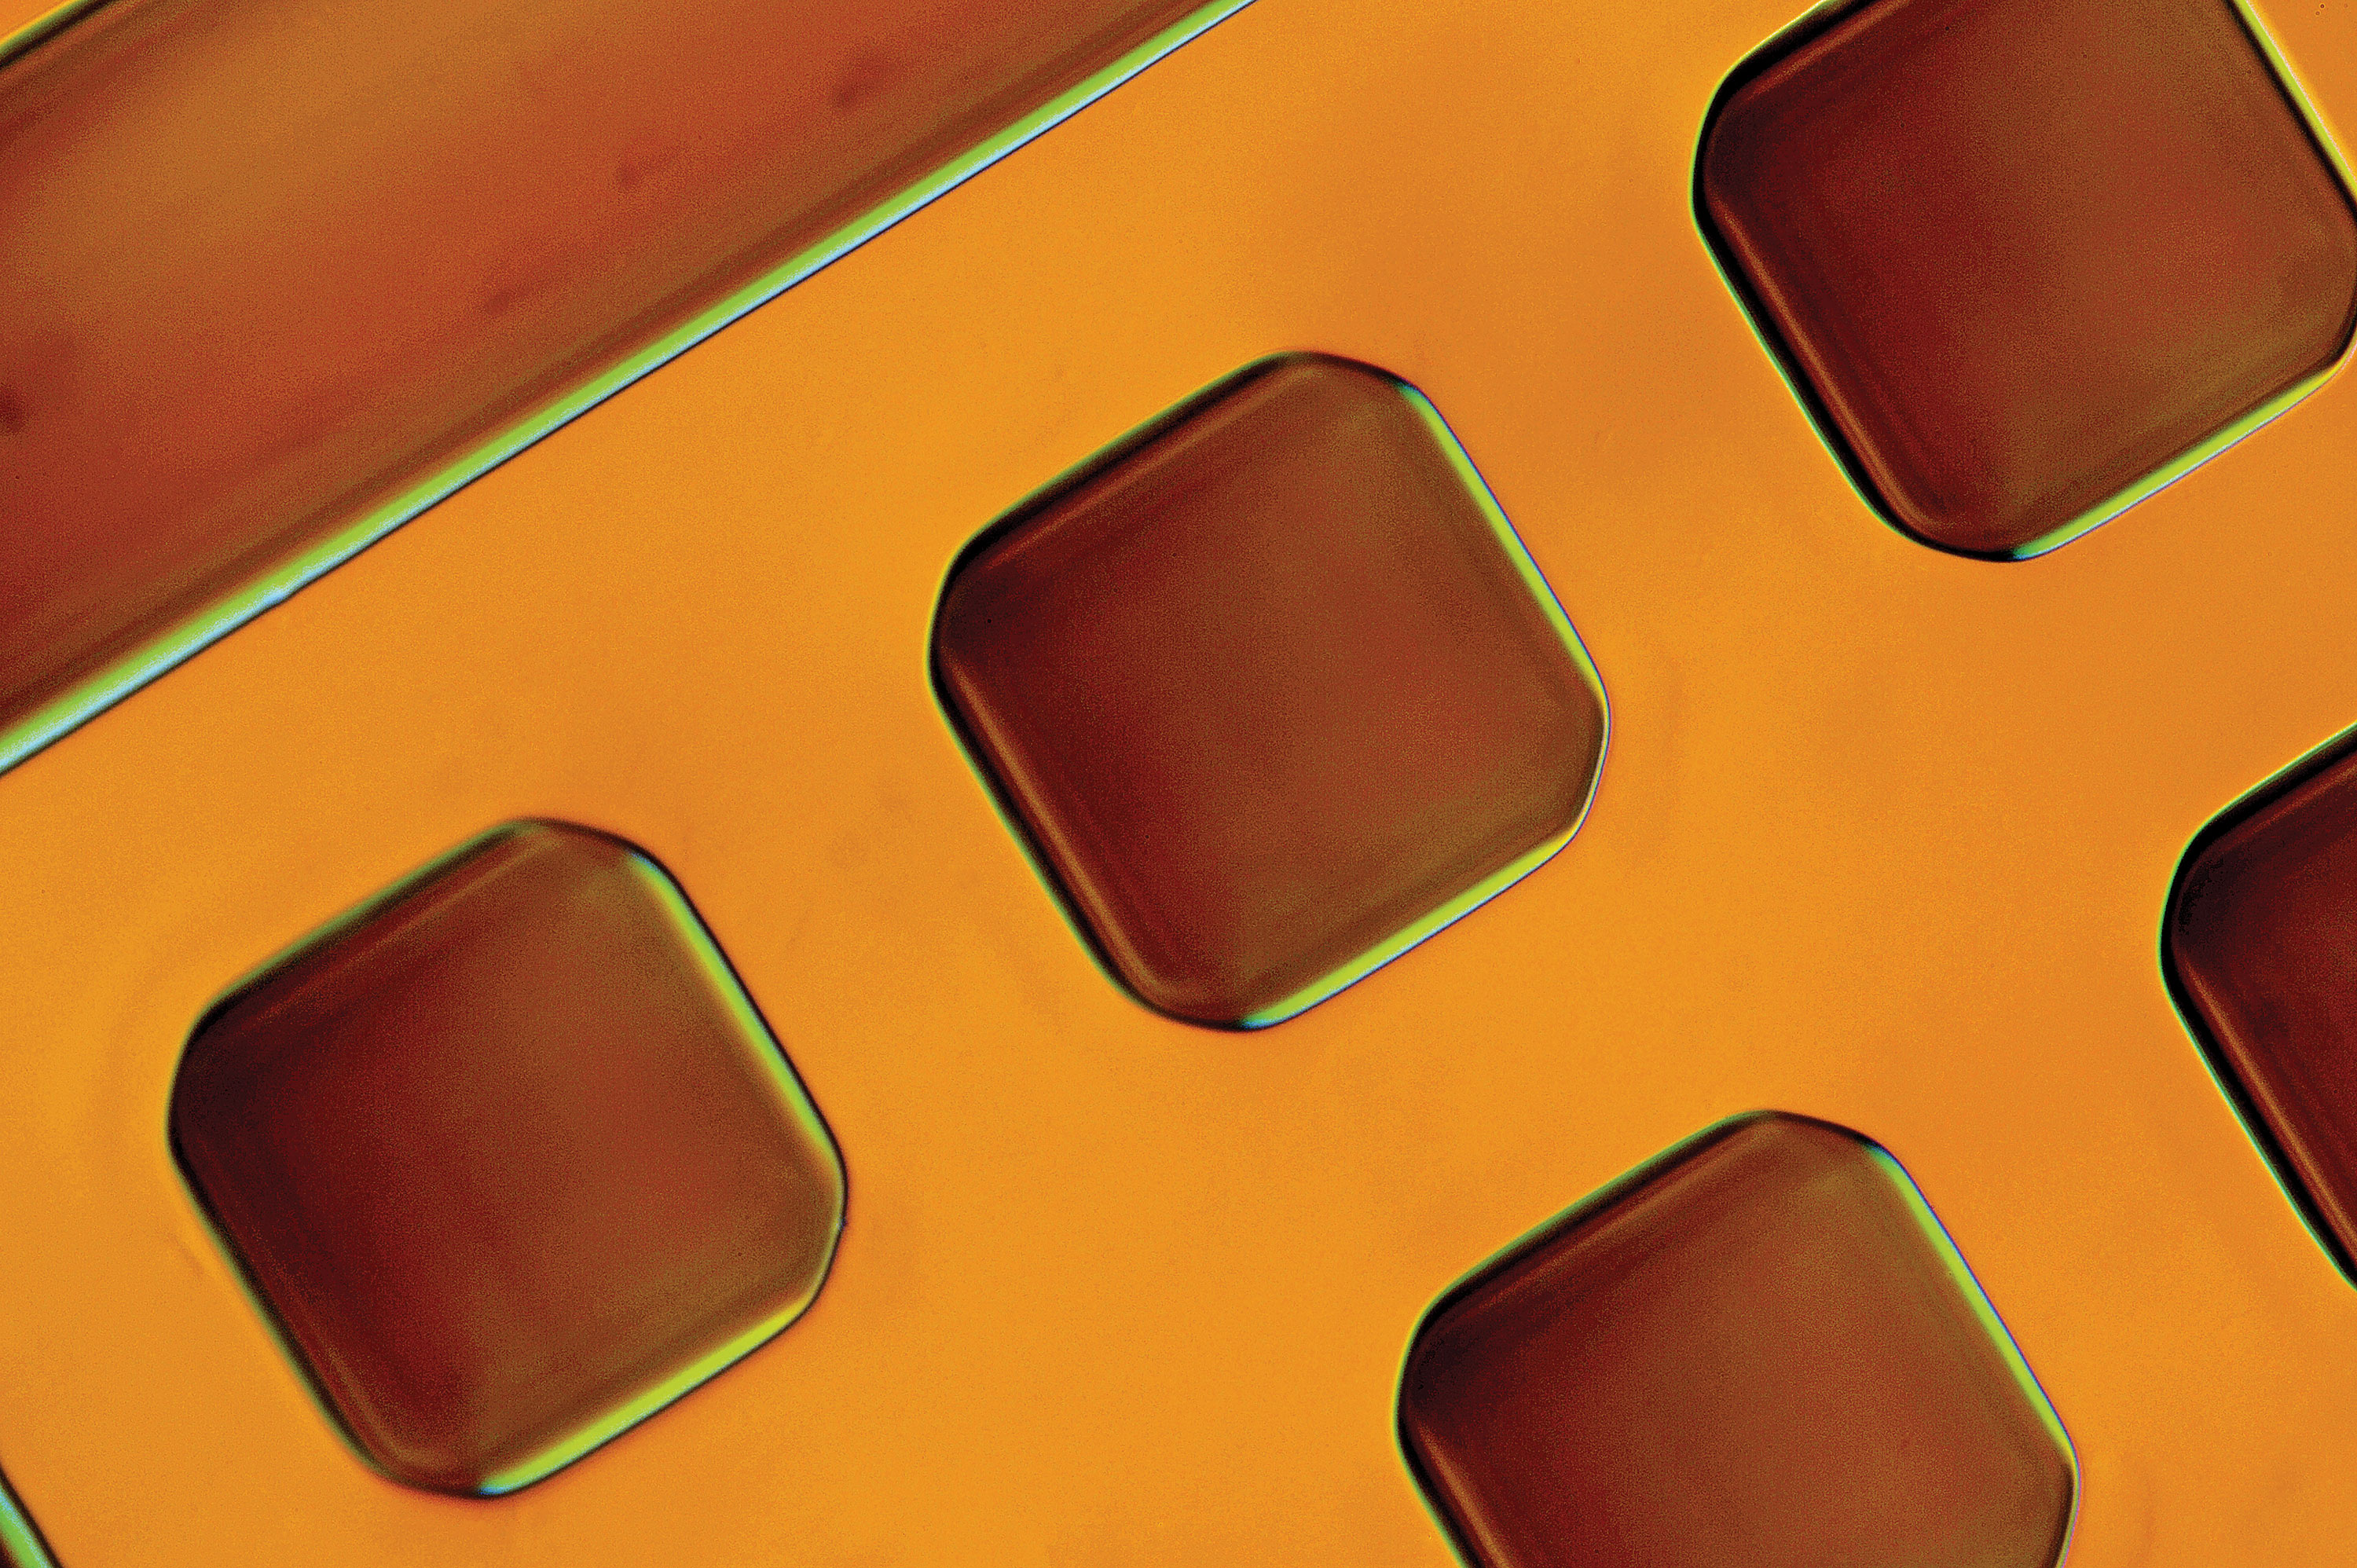 Image of magnified orange grid